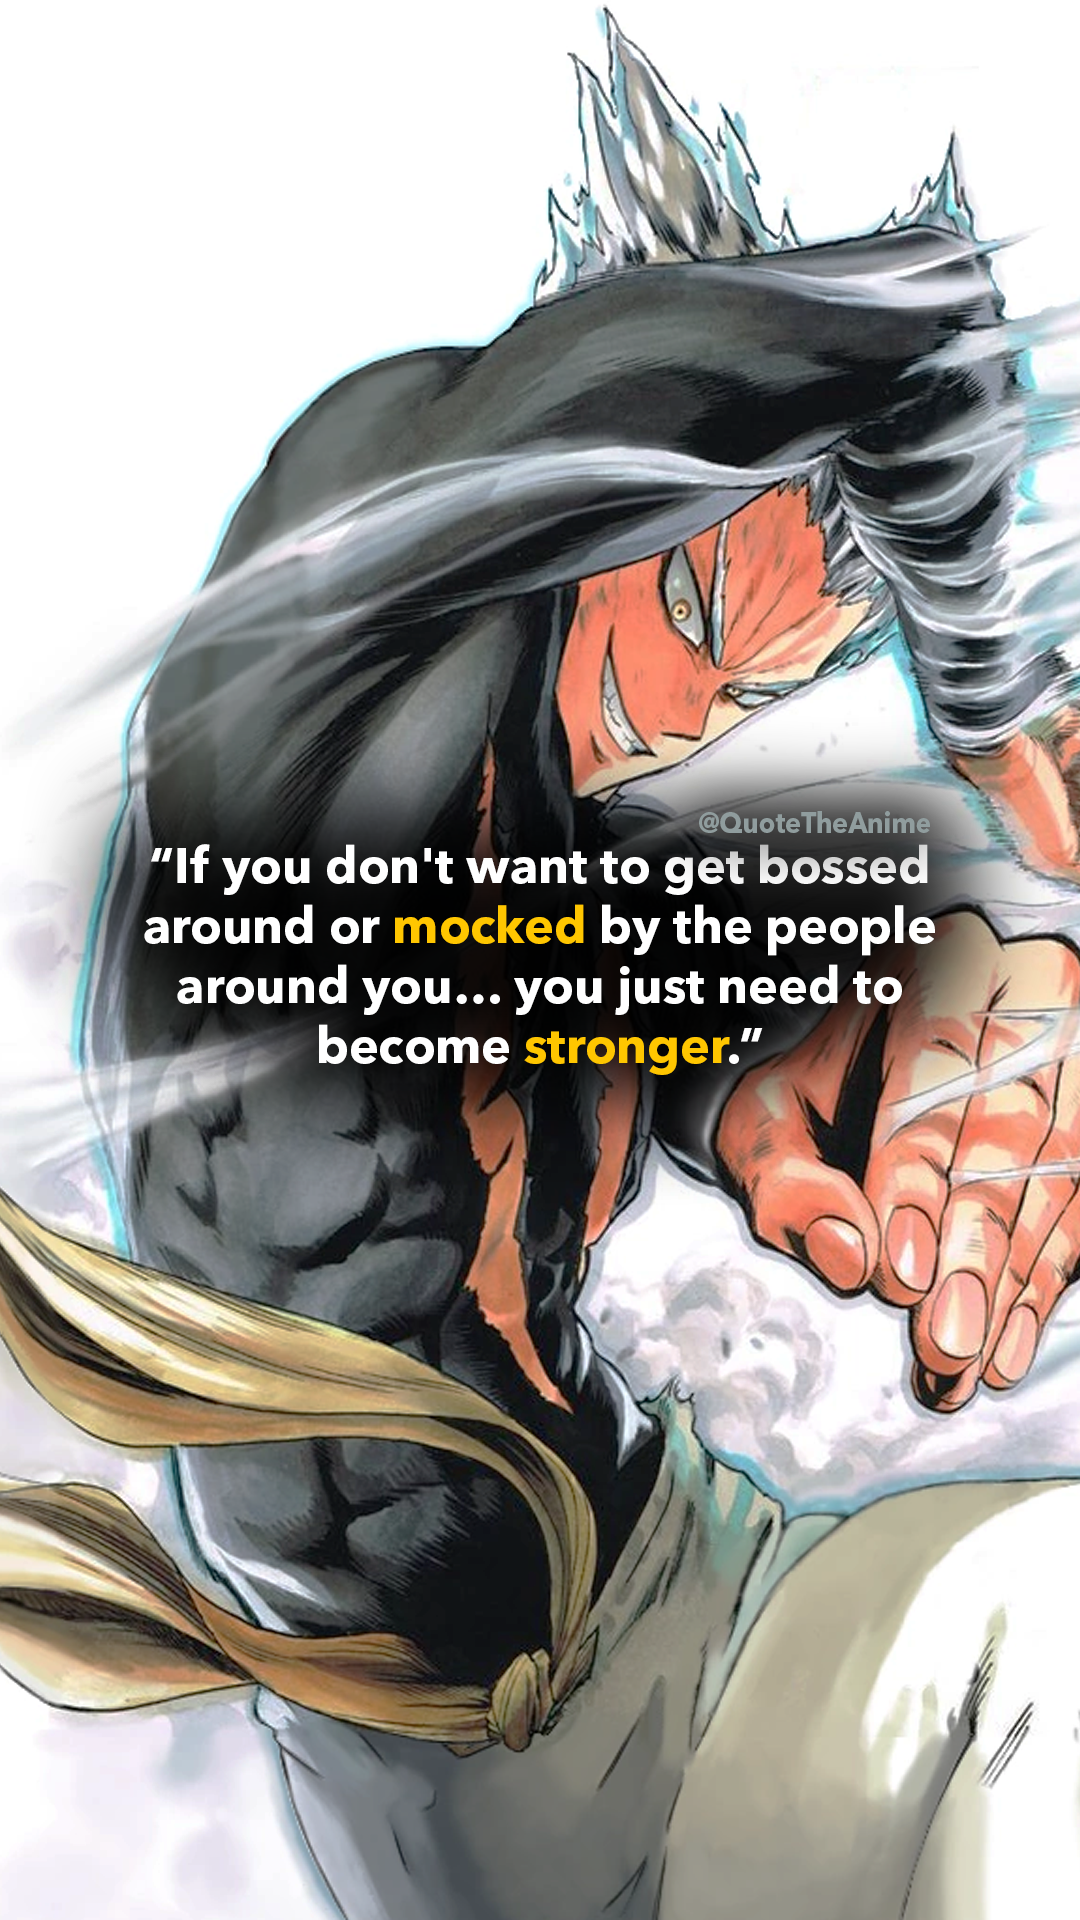 7 Powerful Garou Quotes One Punch Man Hq Images Qta One Punch Man One Punch Man Manga One Punch Man Anime